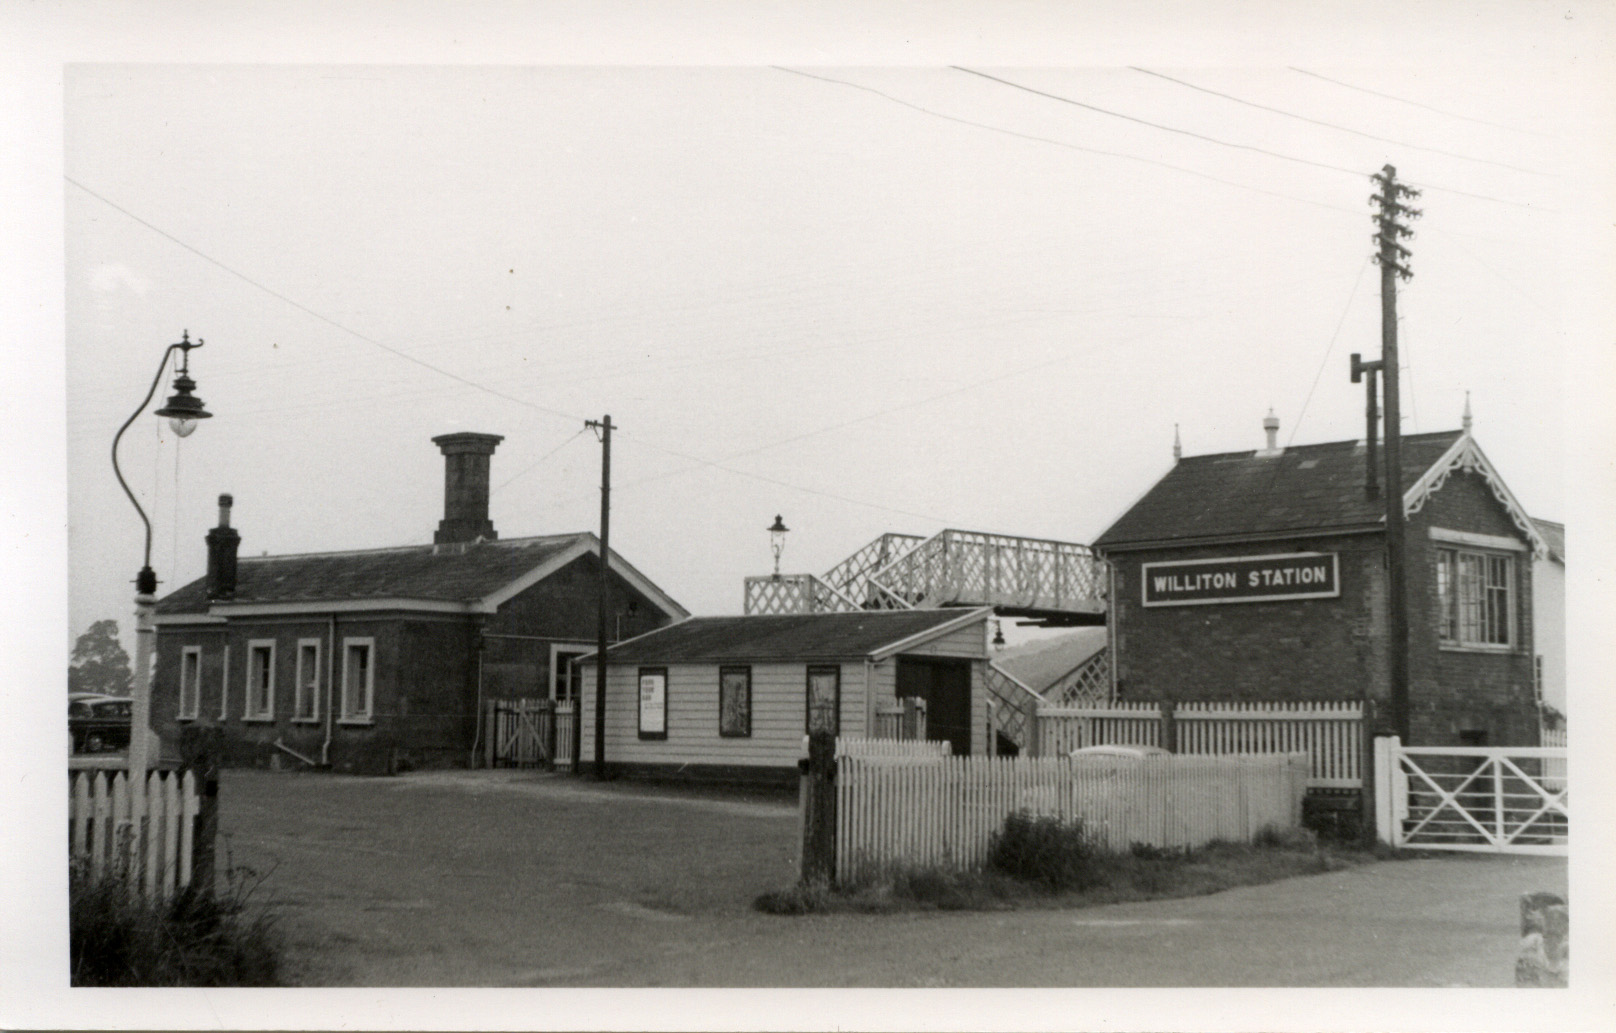 1966 - Williton Station on 22 August ©The John Alsop Collection - 22 August